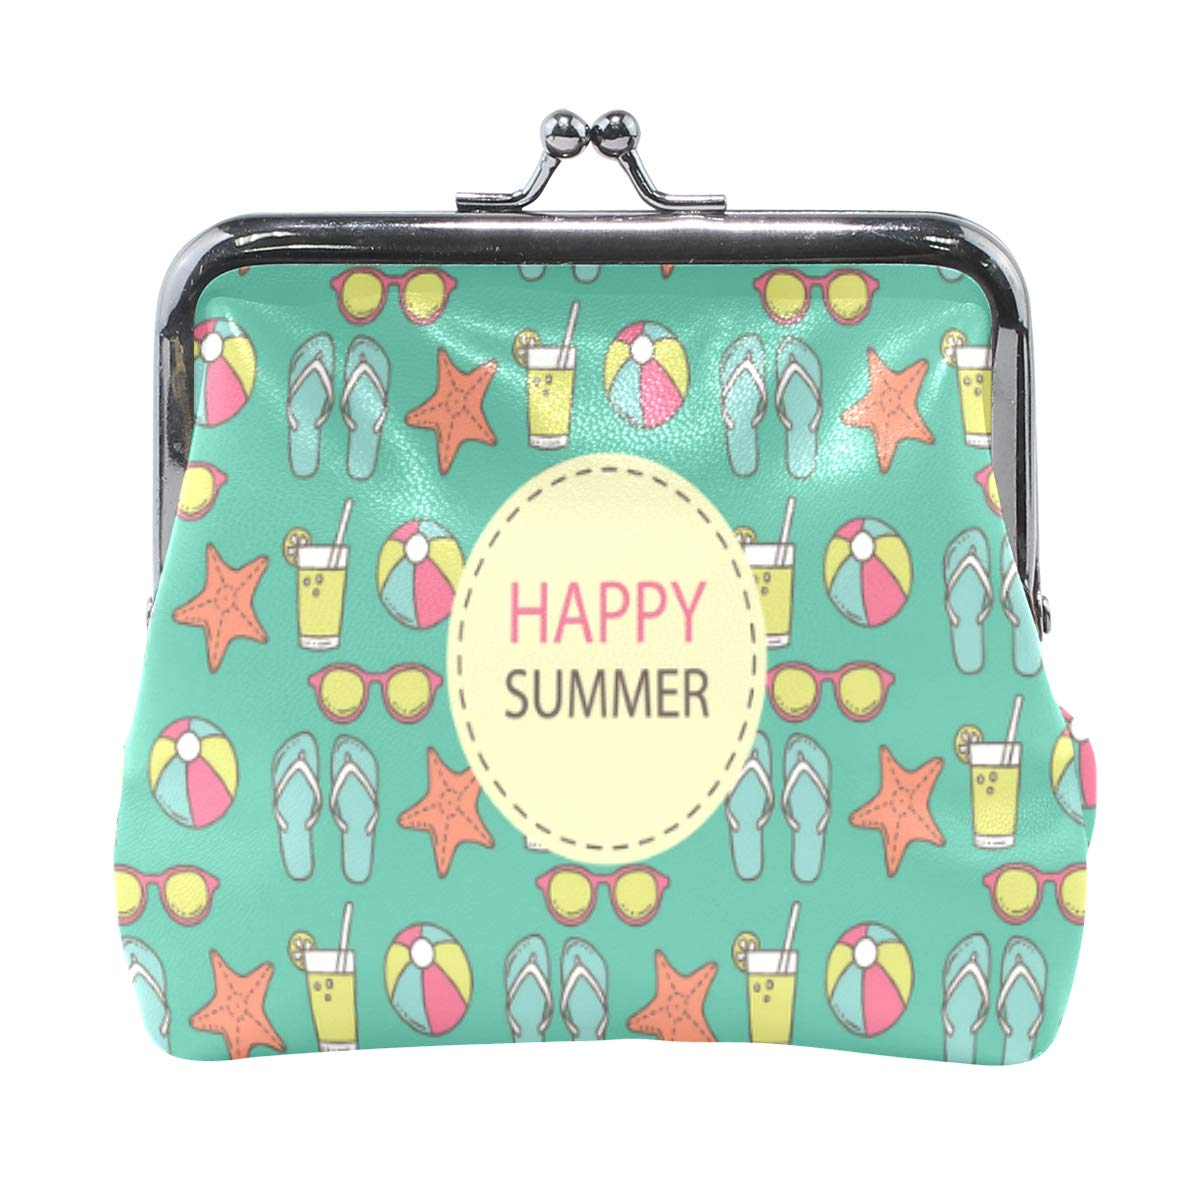 Womens Leather Kiss Lock Double-Sided Happy Summer Coin Purse Wallets